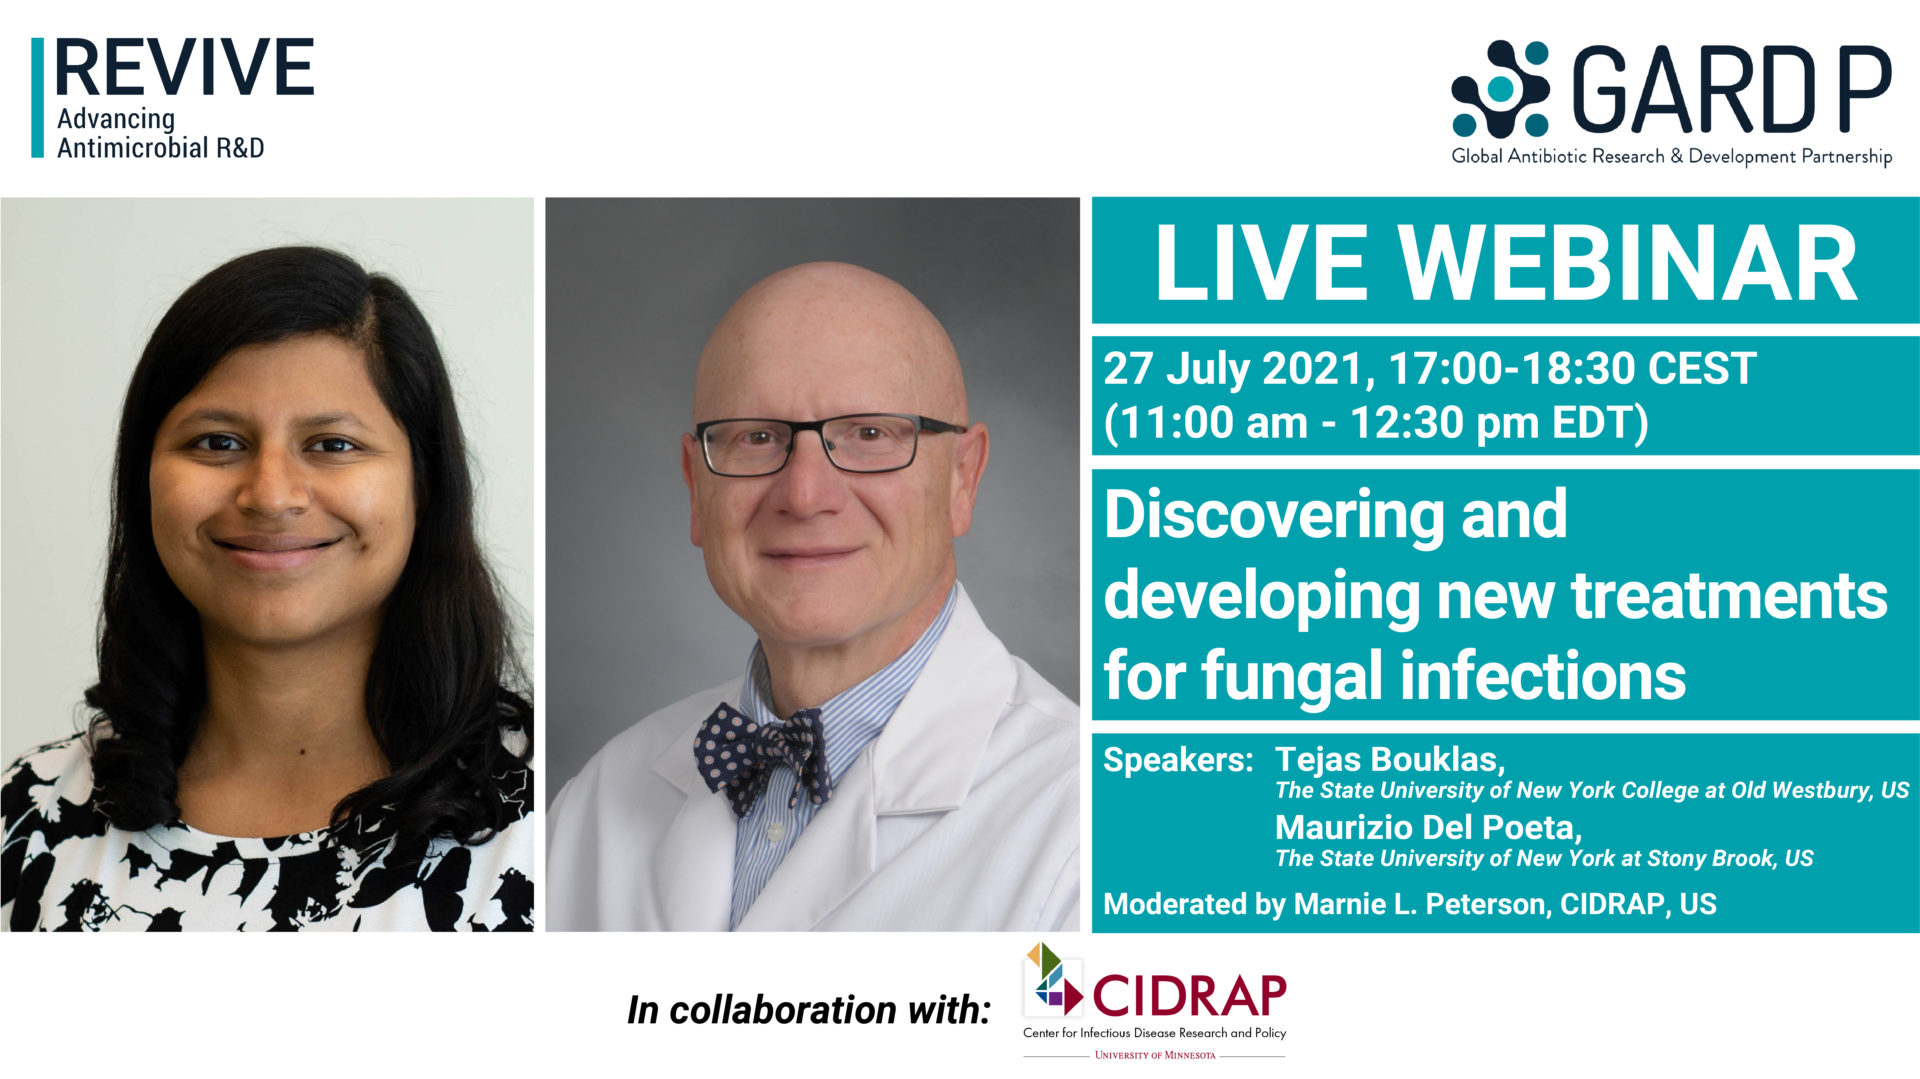 Discovering and developing new treatments for fungal infections